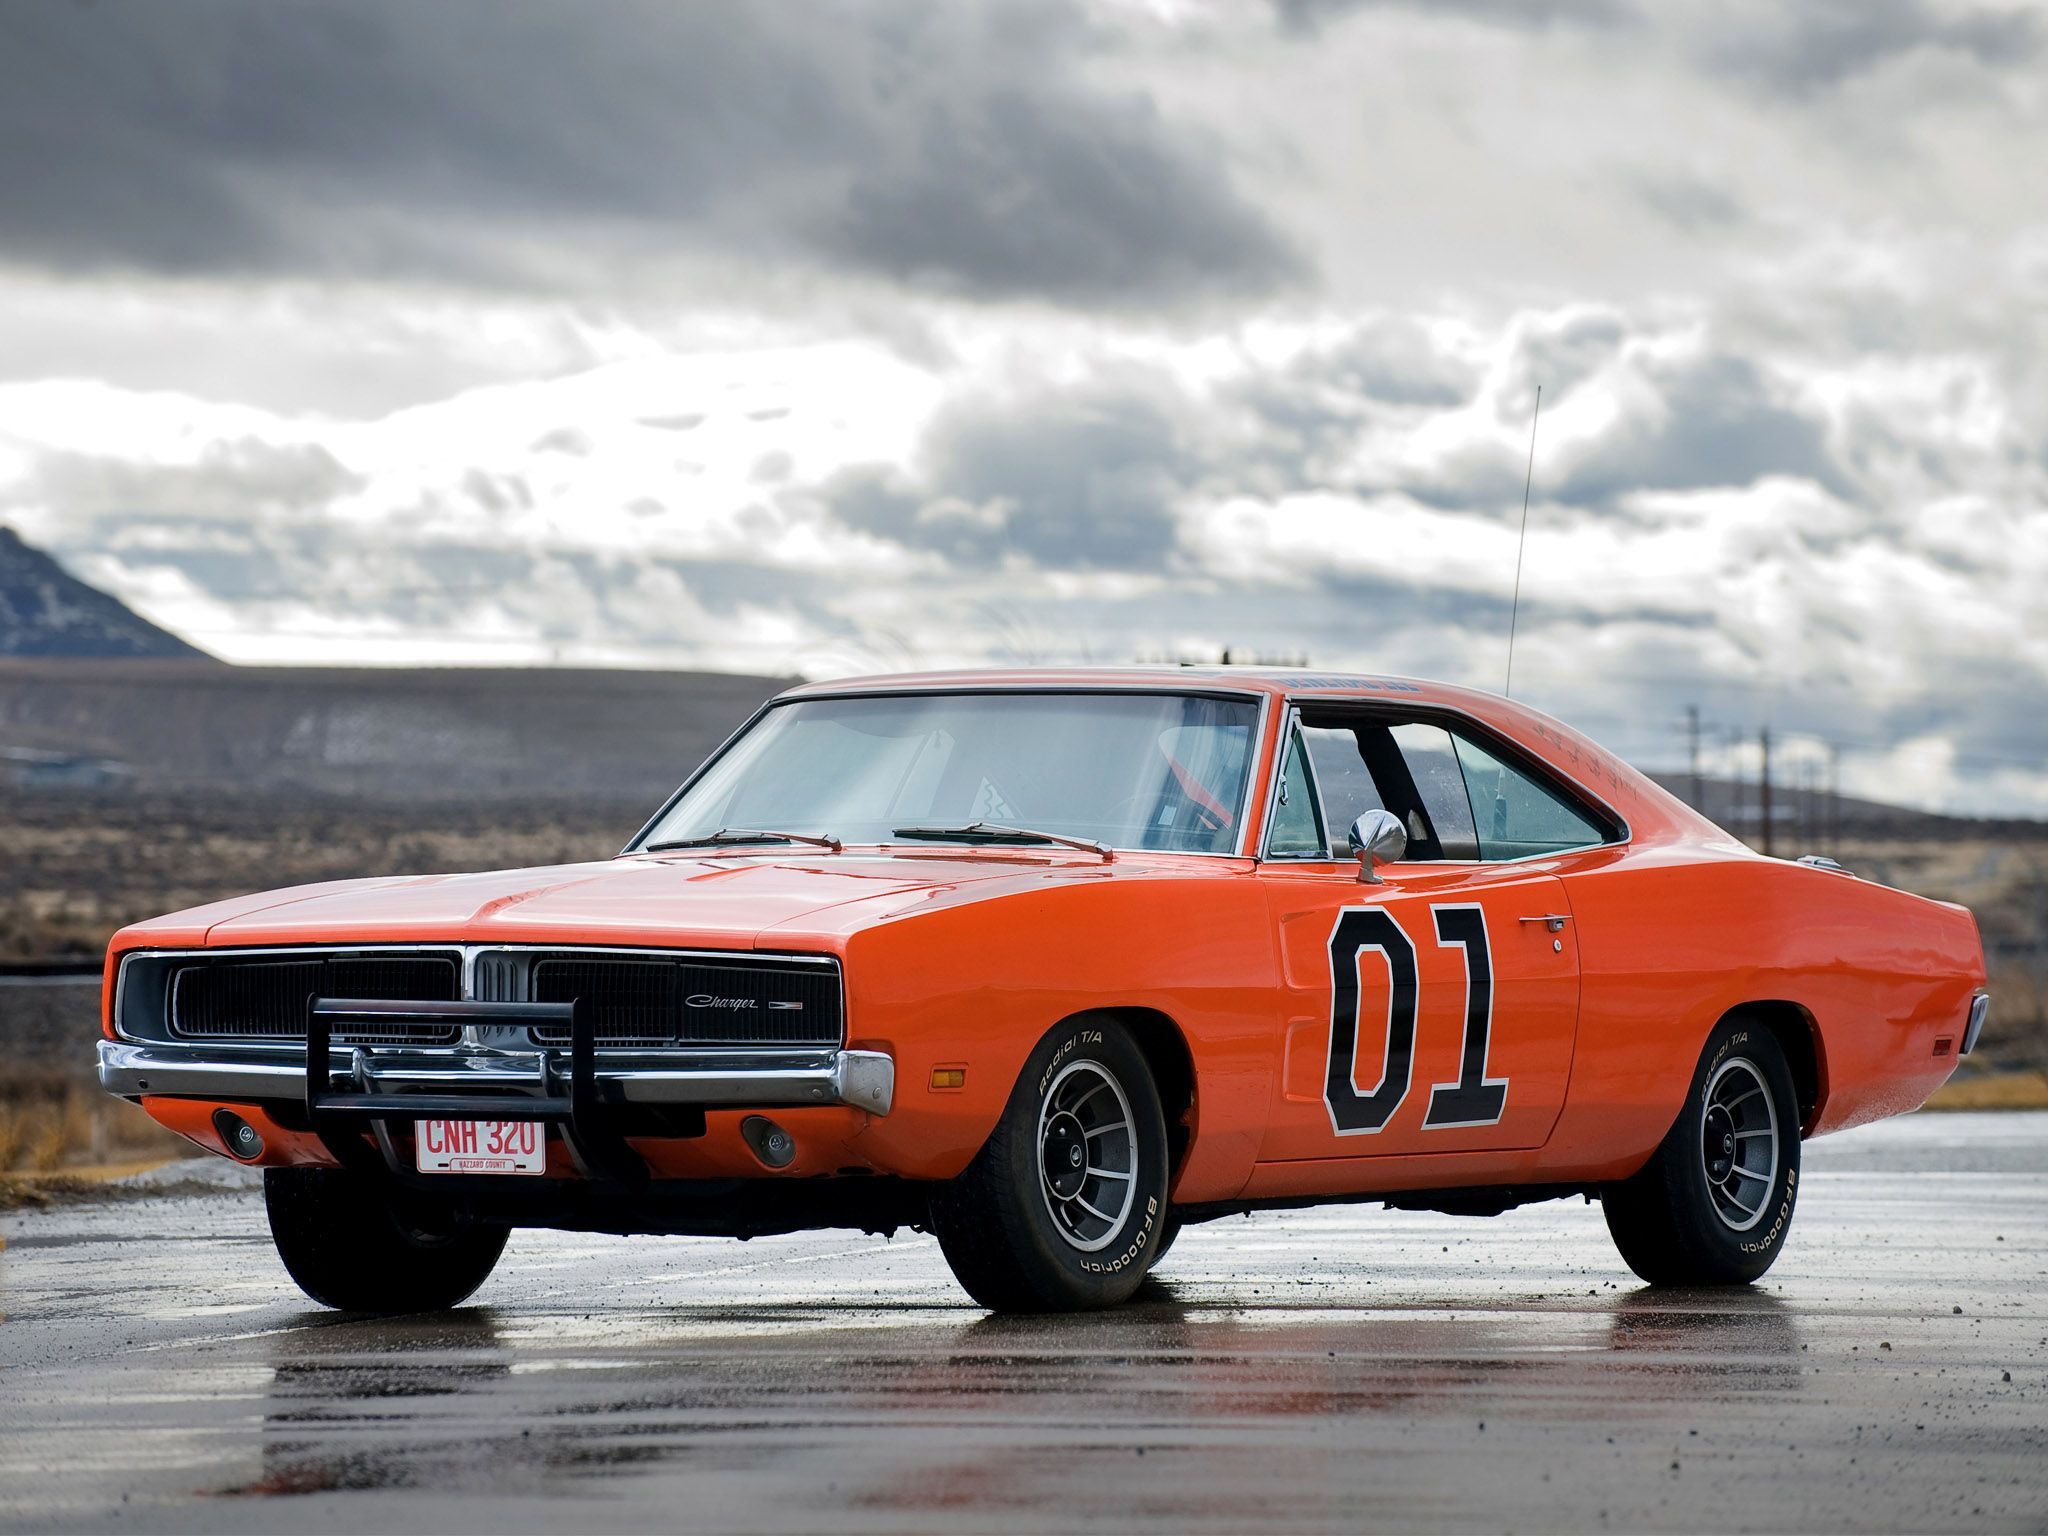 The famous Dodge Charger 1969